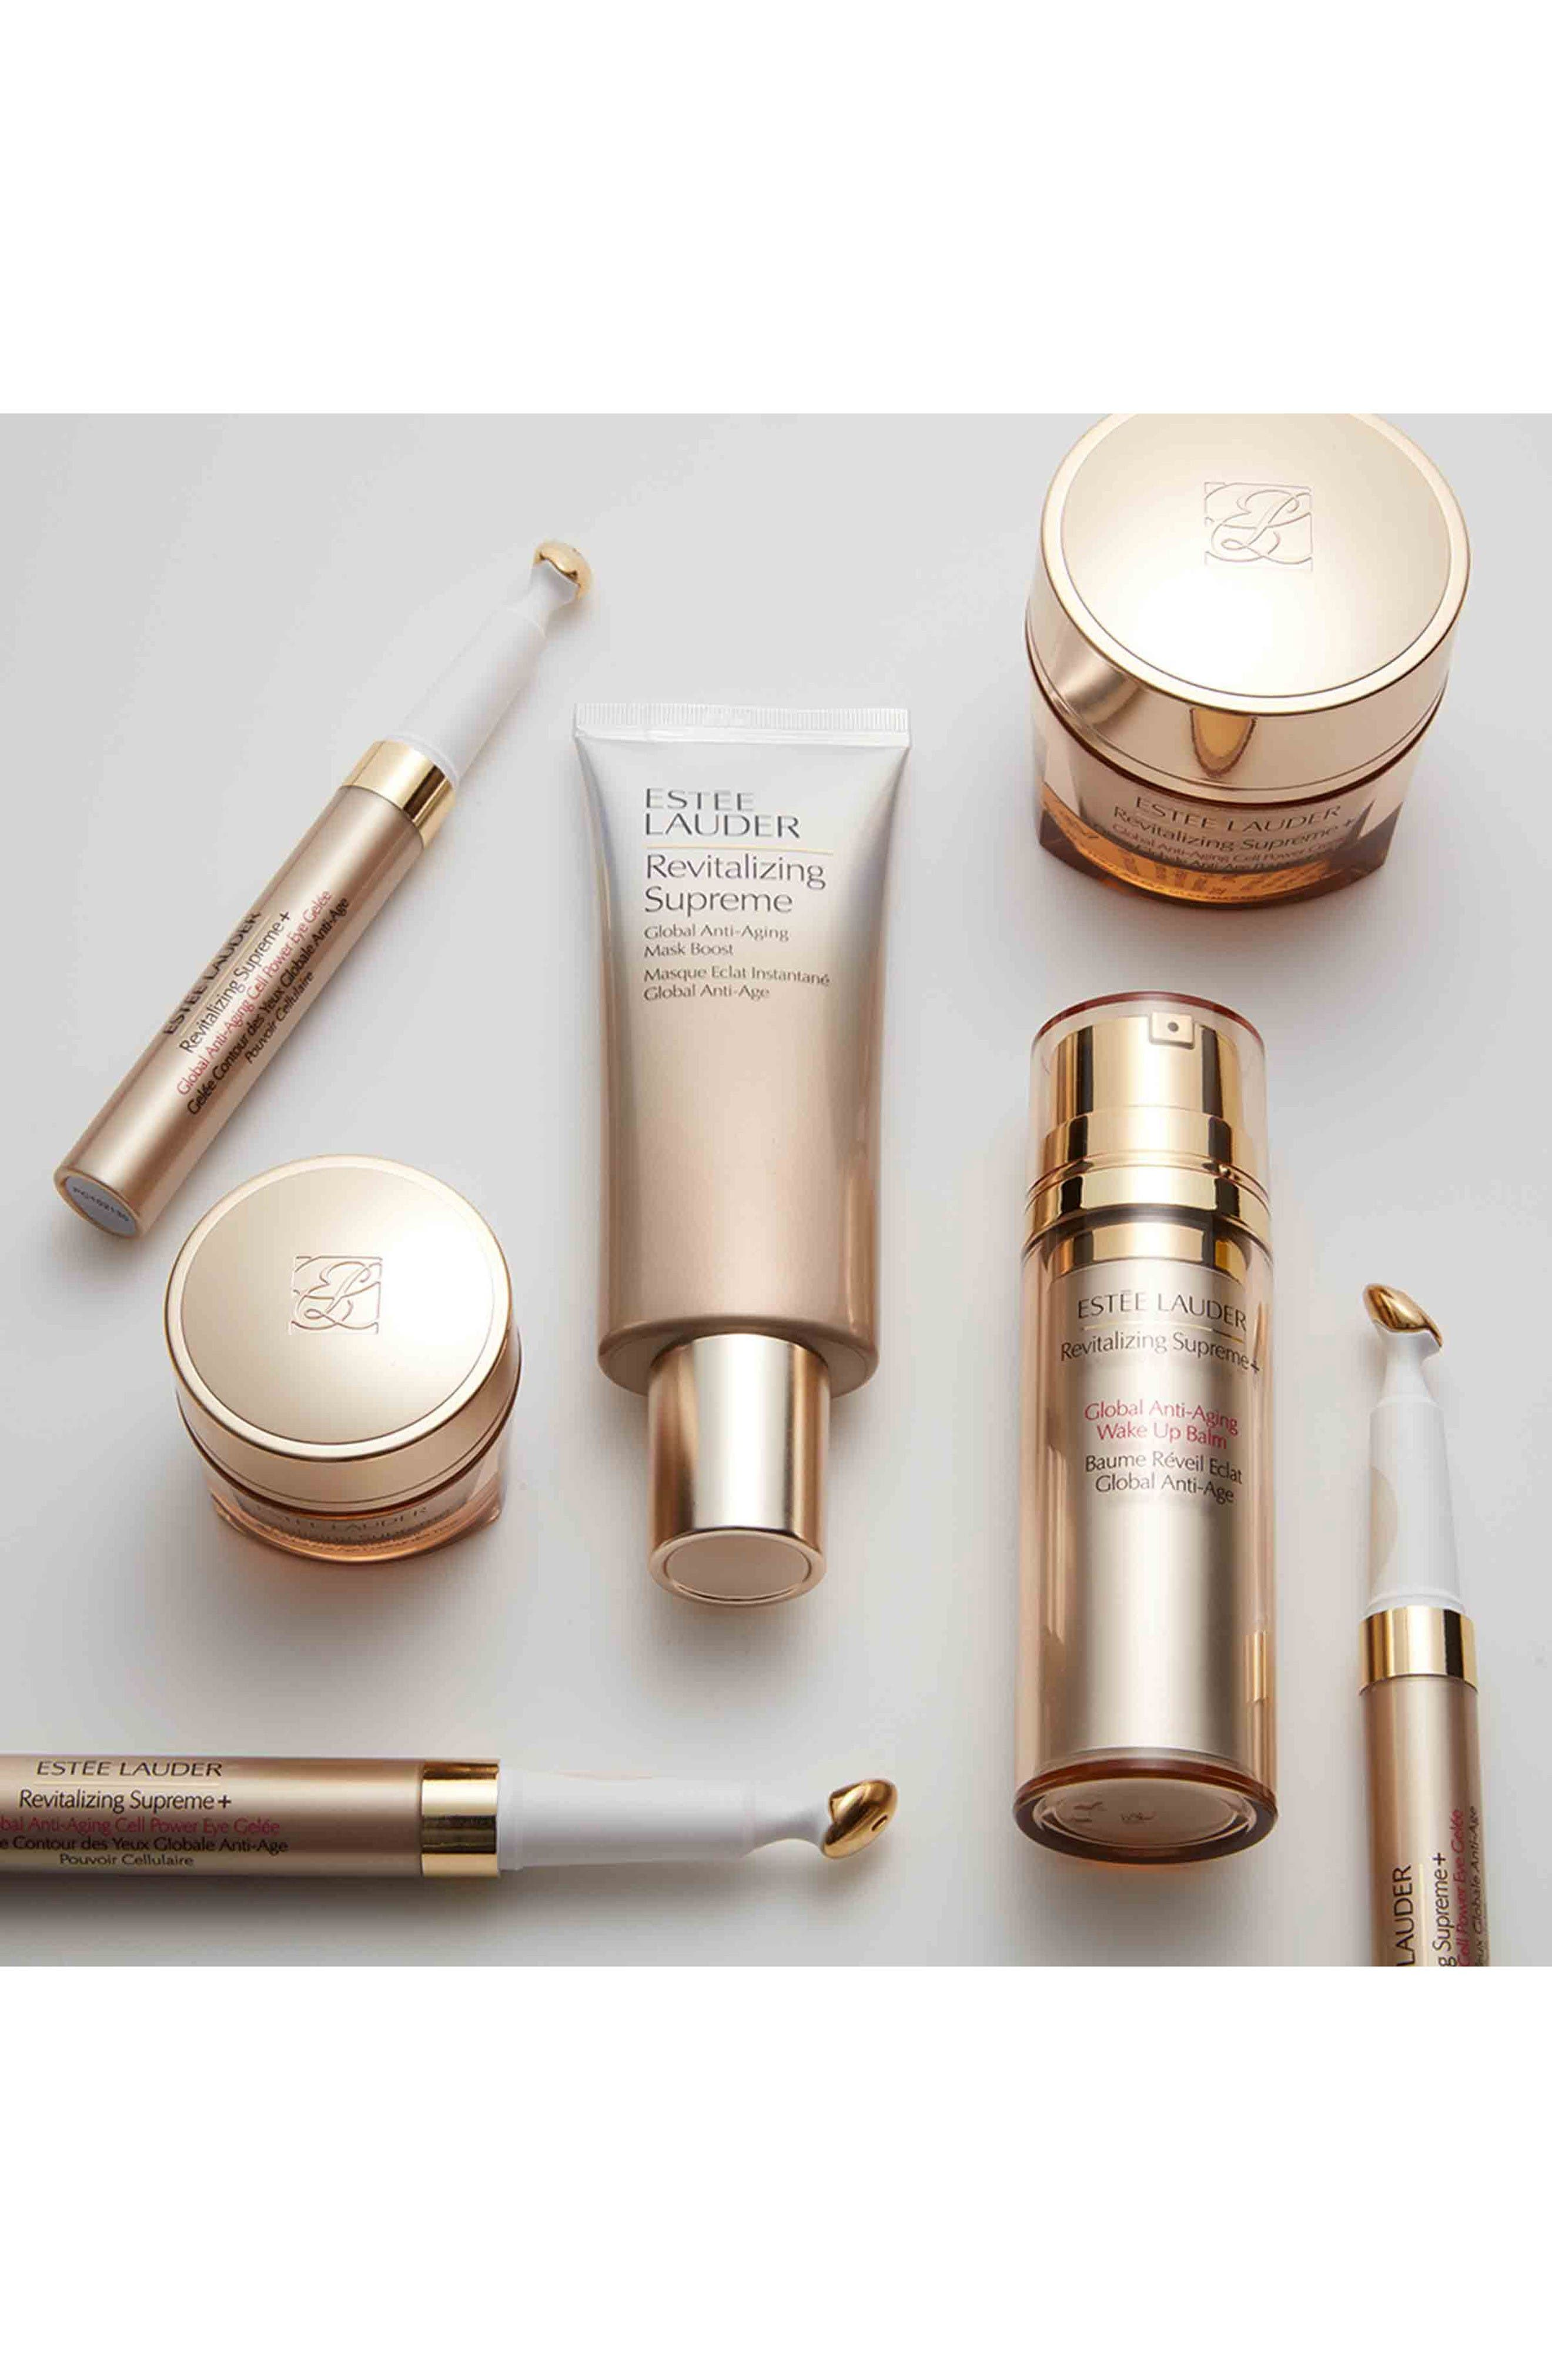 Revitalizing Supreme+ Global Anti-Aging Cell Power Eye Gelée,                             Alternate thumbnail 4, color,                             No Color